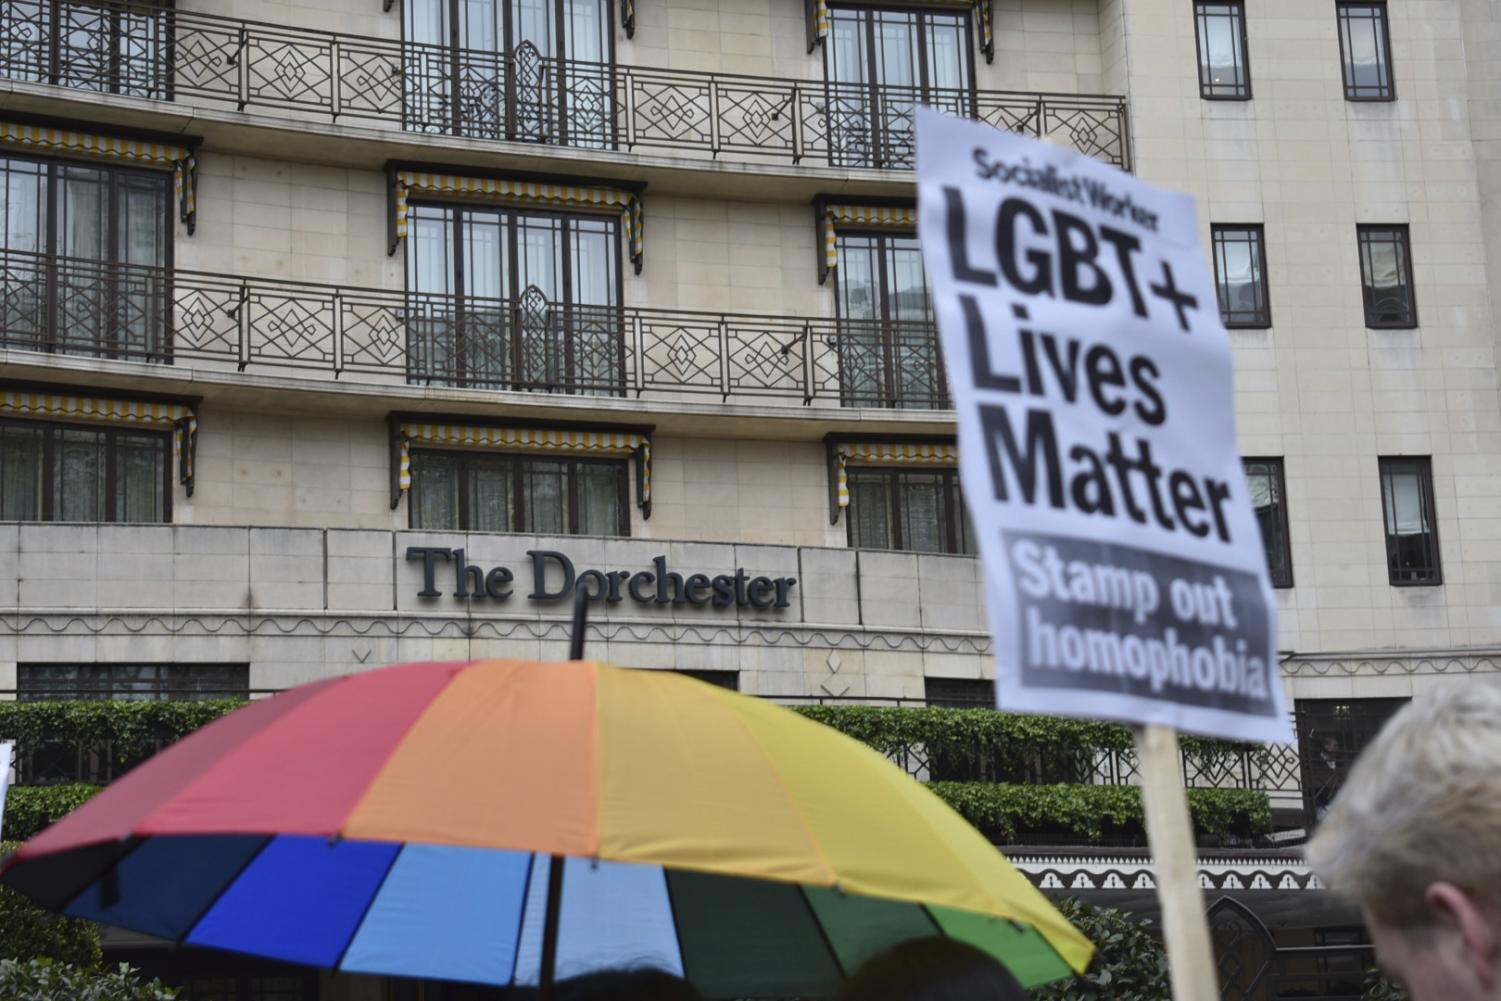 Protestors outside The Dorchester hotel on Park Lane in London, demonstrating against the Brunei anti-gay laws, Saturday April 6, 2019. Protesters gather outside the hotel owned by the Sultan of Brunei, to decry Islamic laws in the Southeast Asian nation of Brunei that punish gay sex and adultery by stoning offenders to death. (Sophie Hogan/PA via AP)